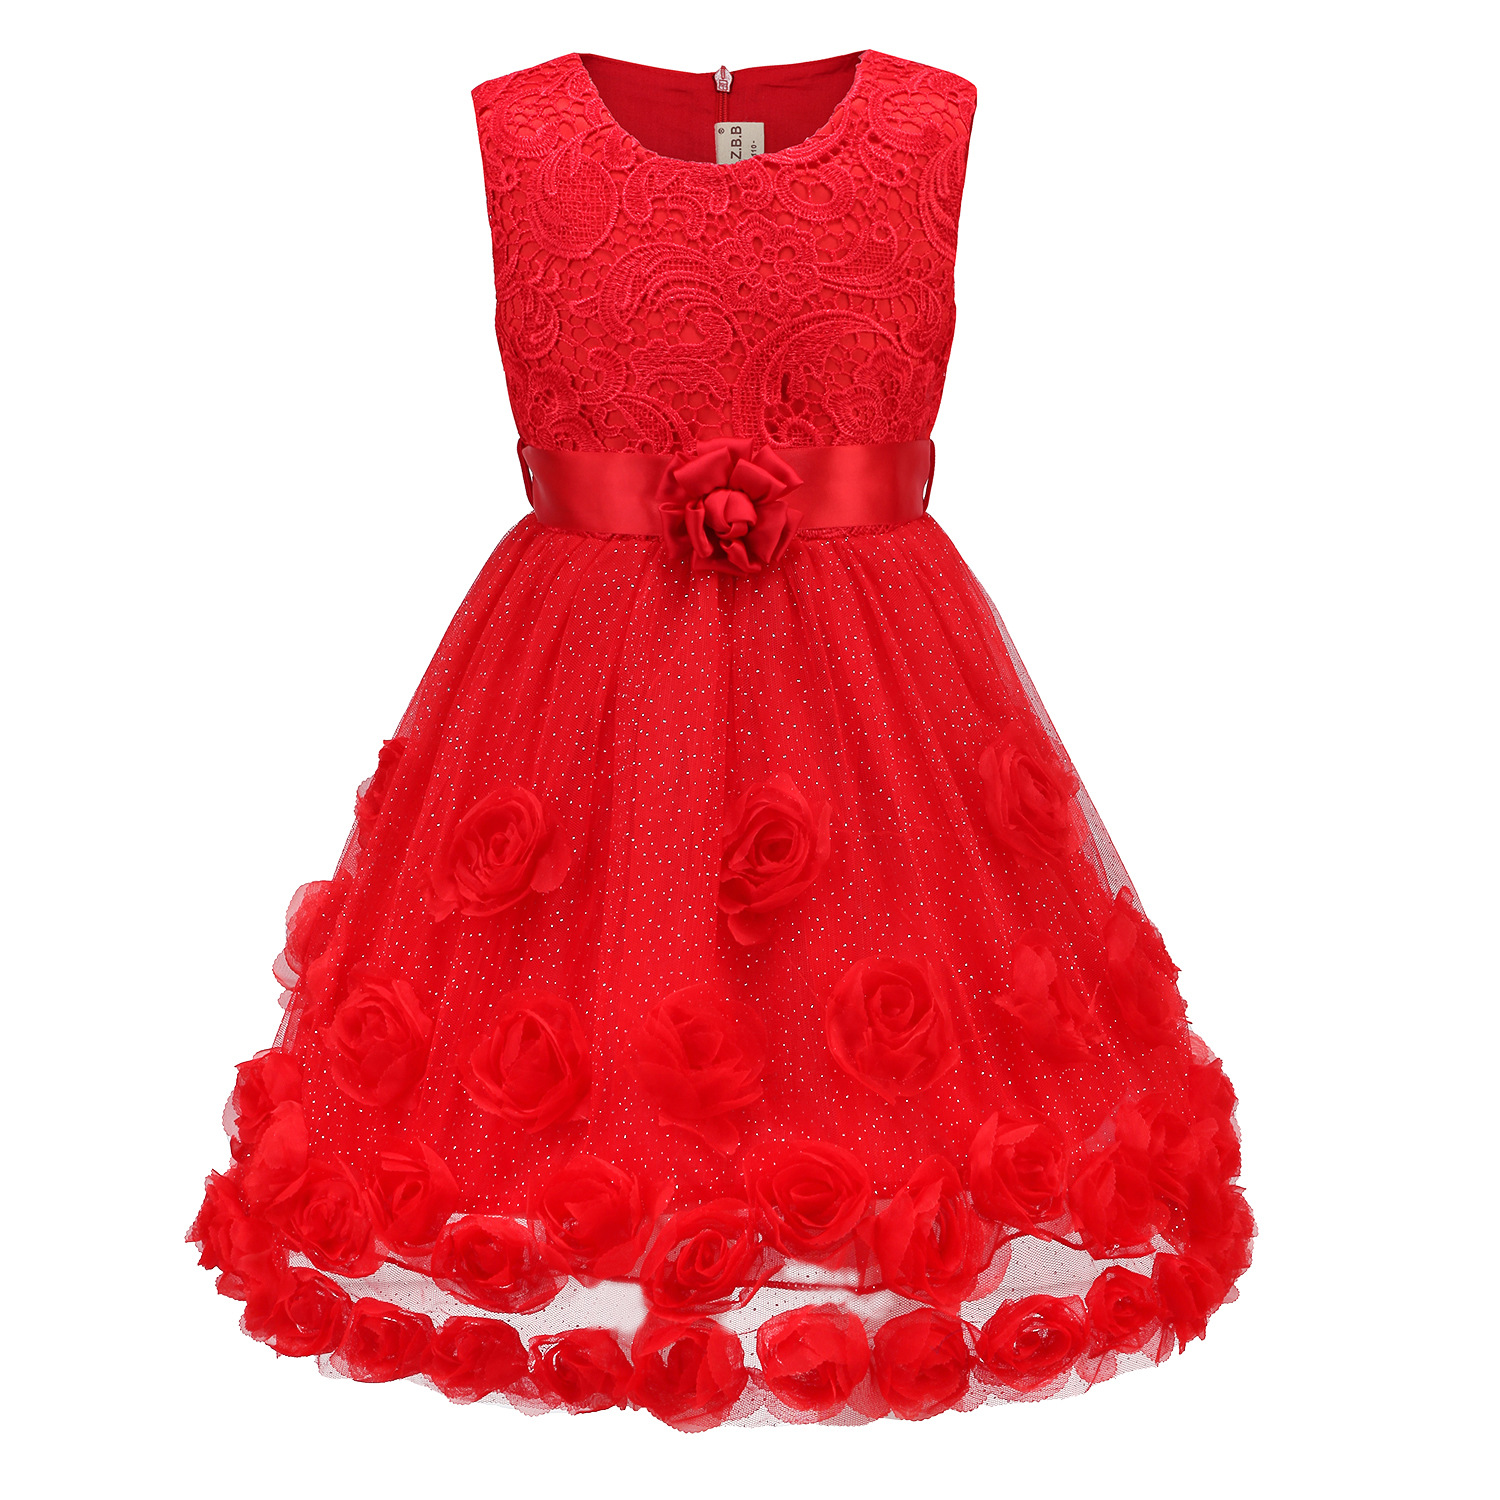 good quality high grade 2017 new summer boys Girls Kid Red lace 3D flower princess dress baby Clothes Children Clothing 25W